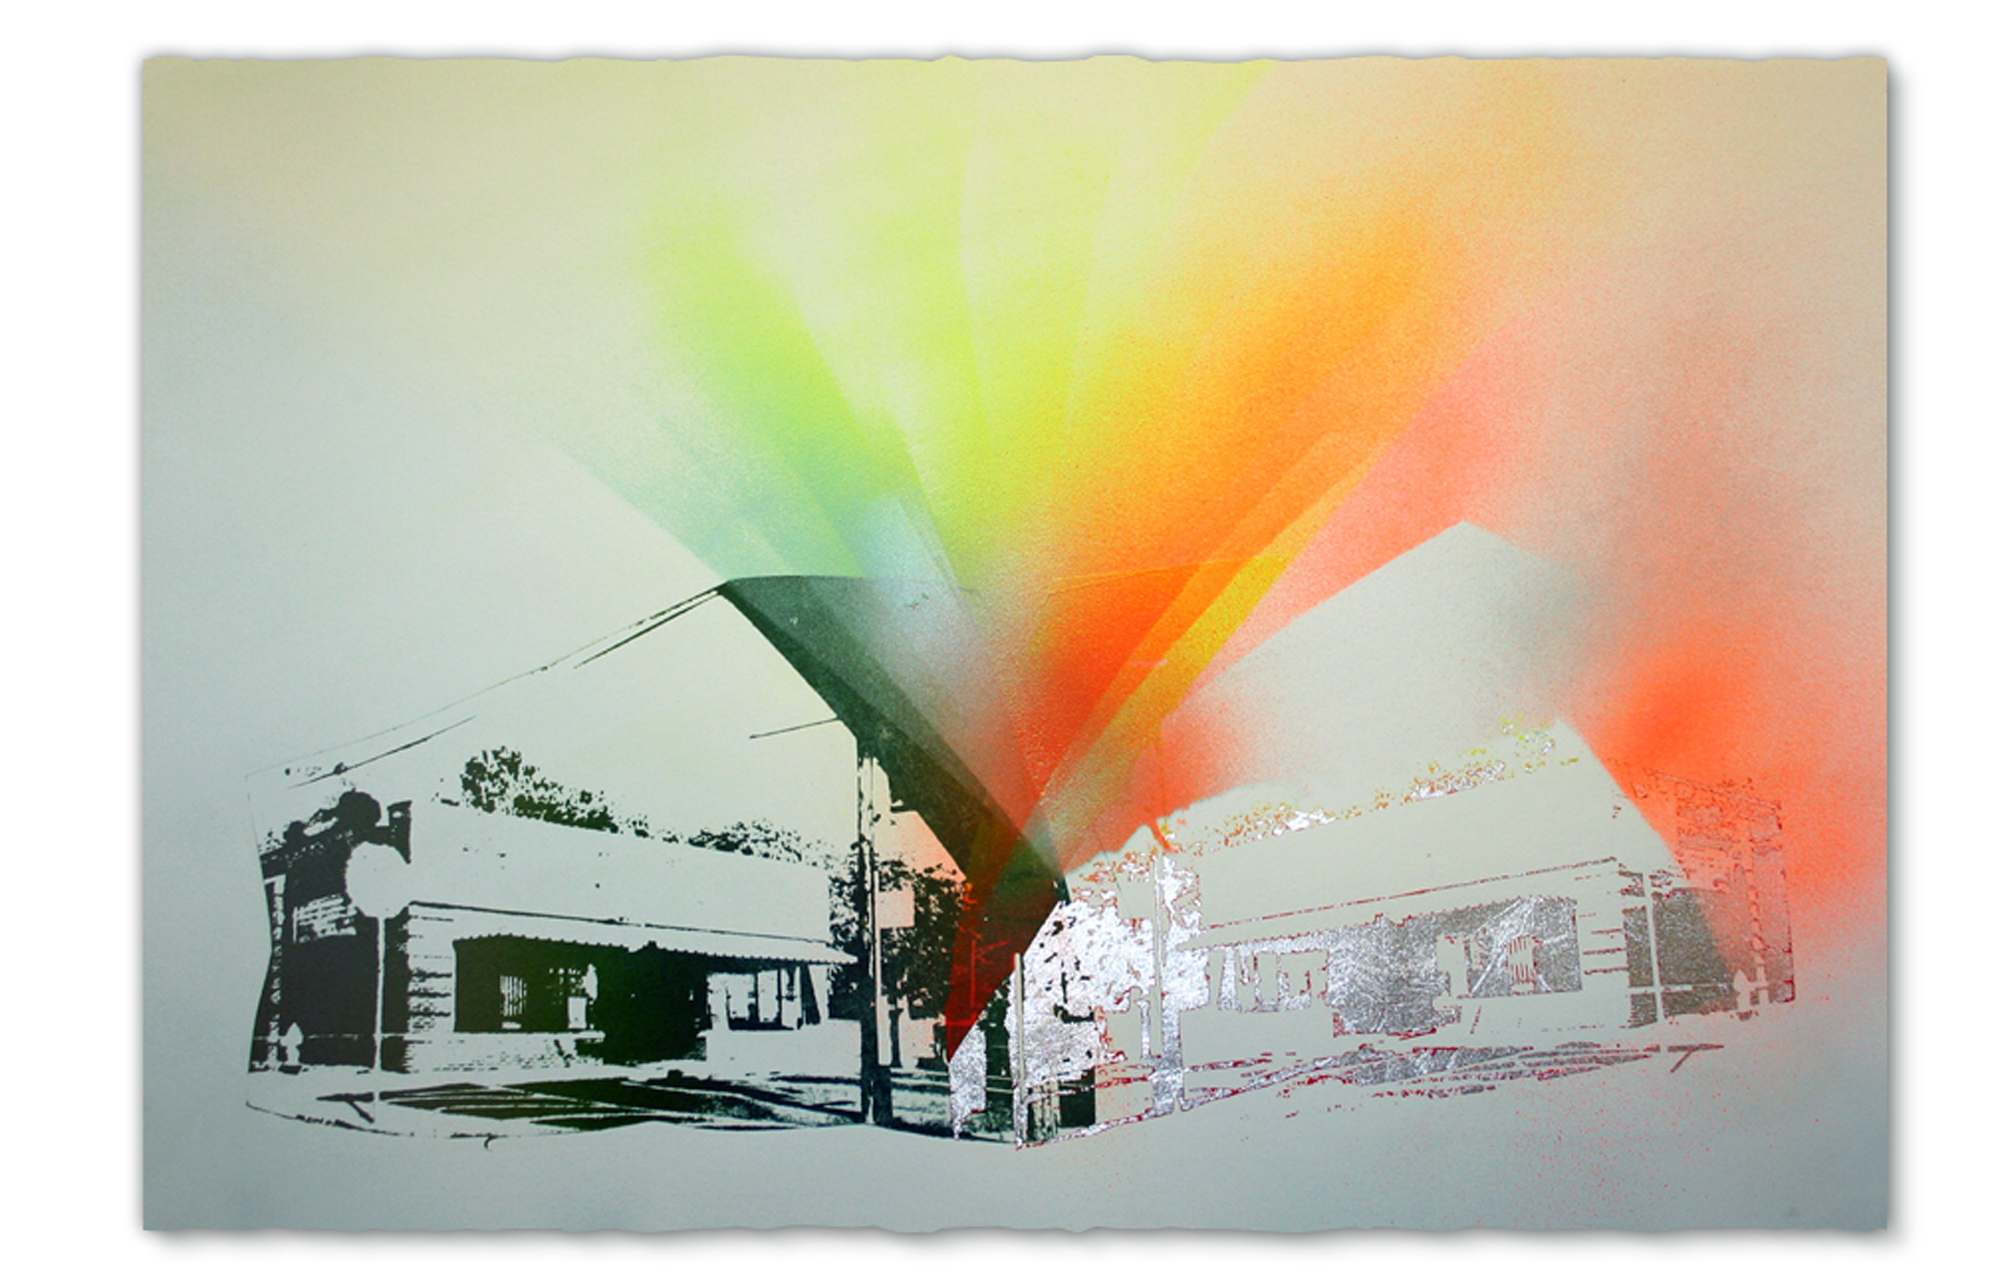 Tony's, East Peoria,  2015.  Photo lithography, screenprint, spray paint, and pencil, 15 in H x 22.5 in W